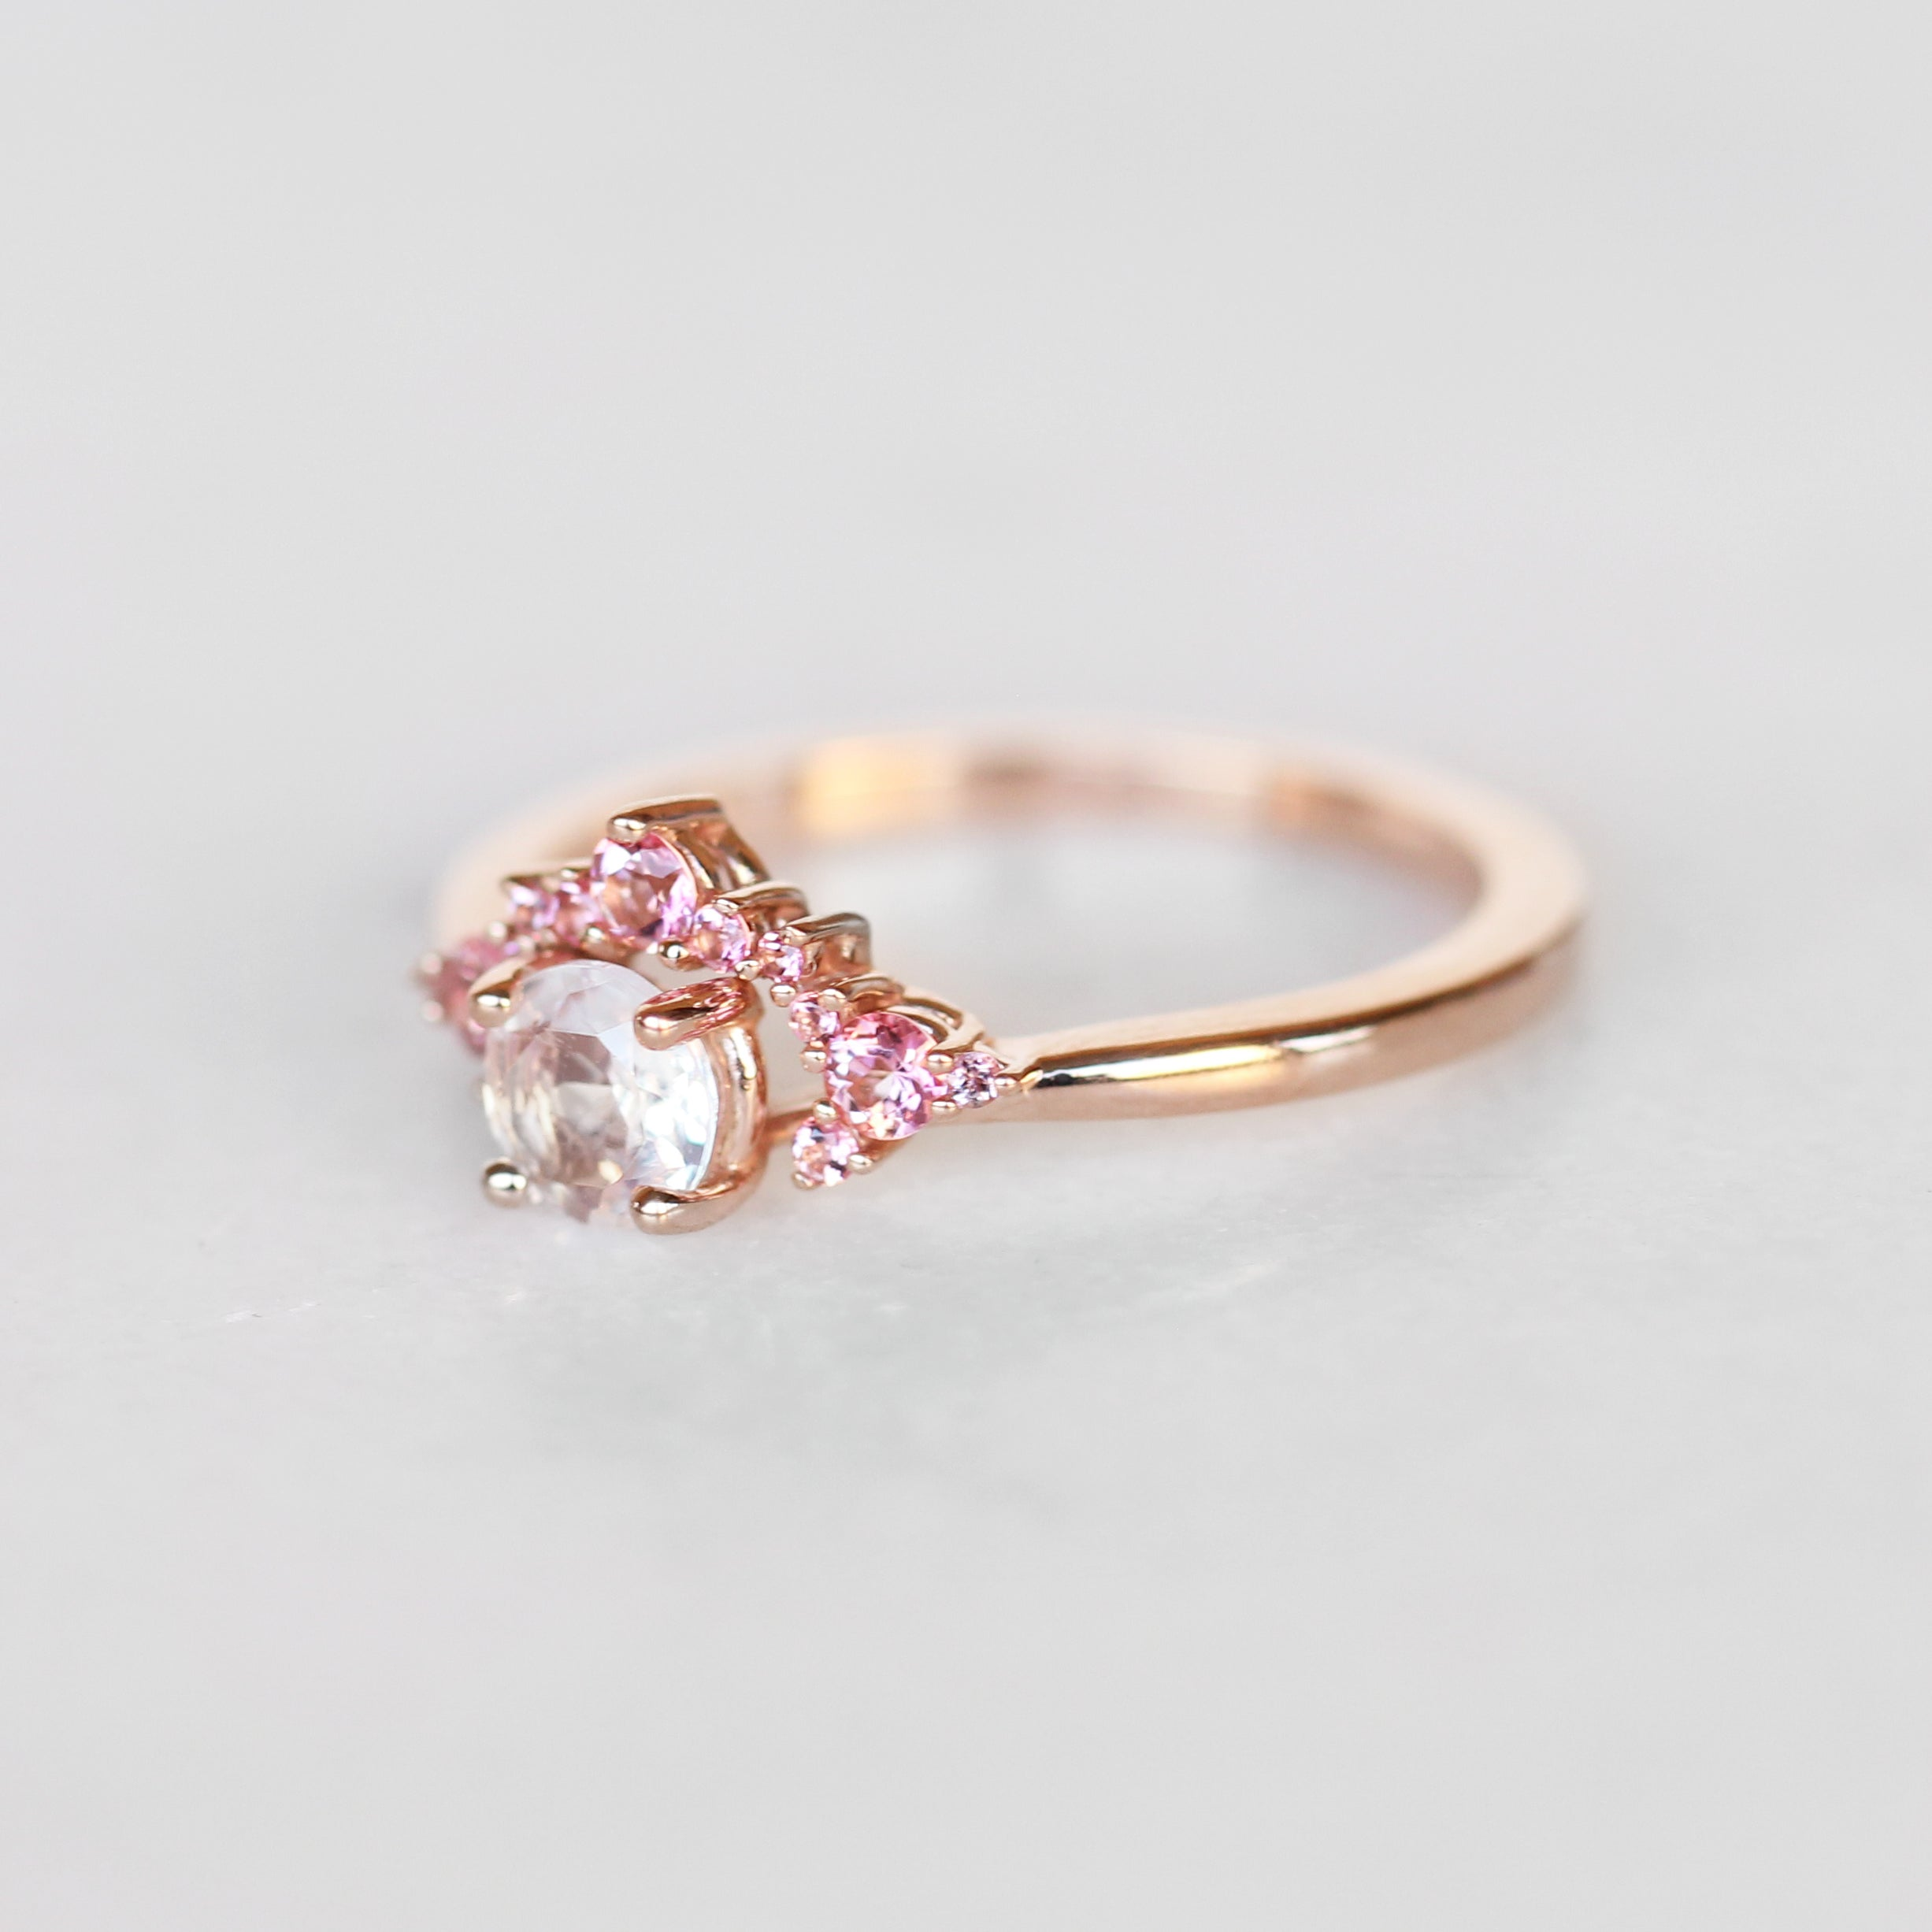 Athena Ring with a .70 ct Moonstone in Rose Gold - Celestial Diamonds ® by Midwinter Co.